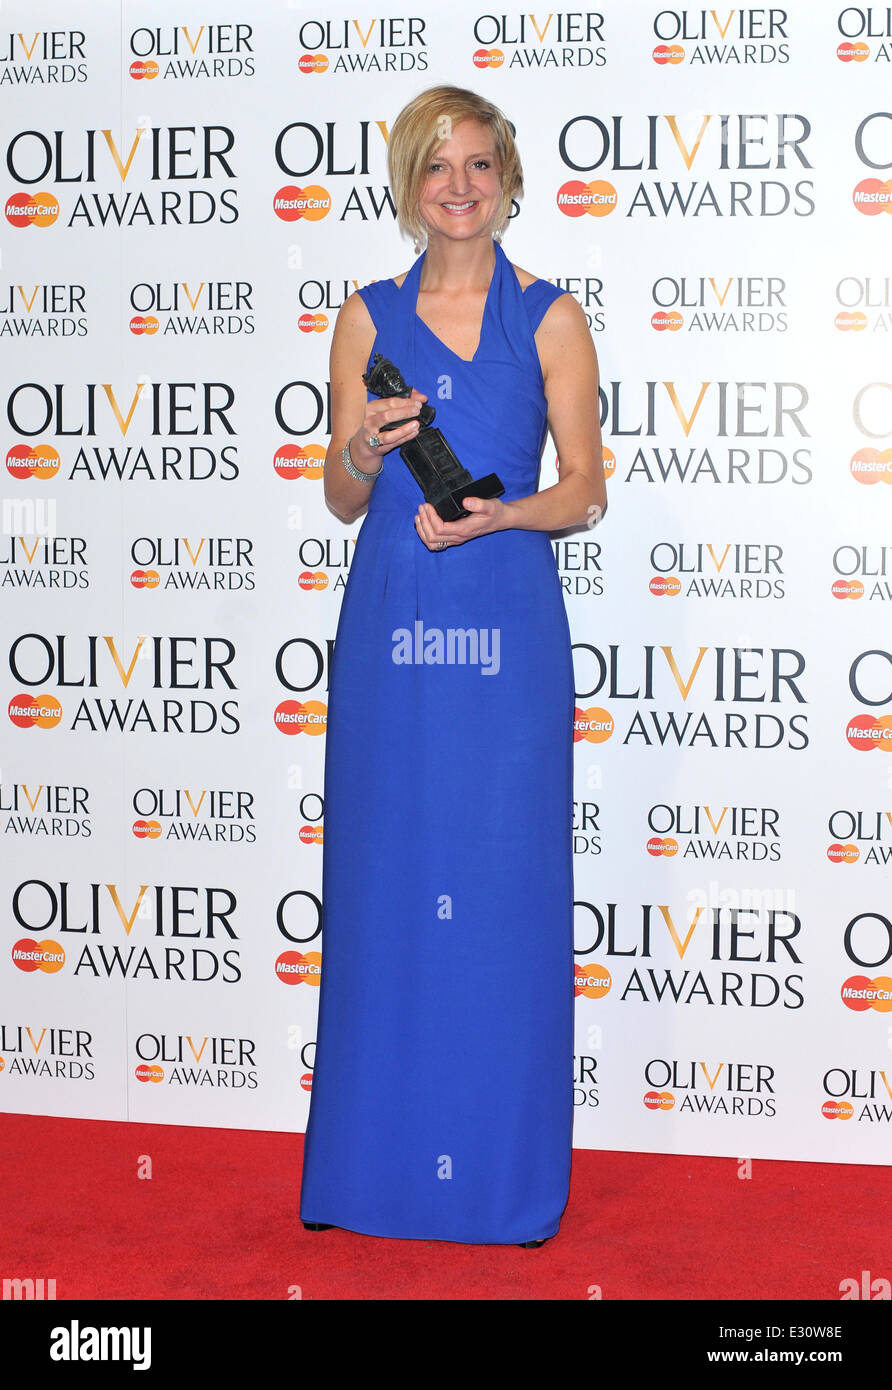 The Olivier Awards held at the Royal Opera House - Pressroom  Featuring: Marianne Elliott Where: London, United - Stock Image